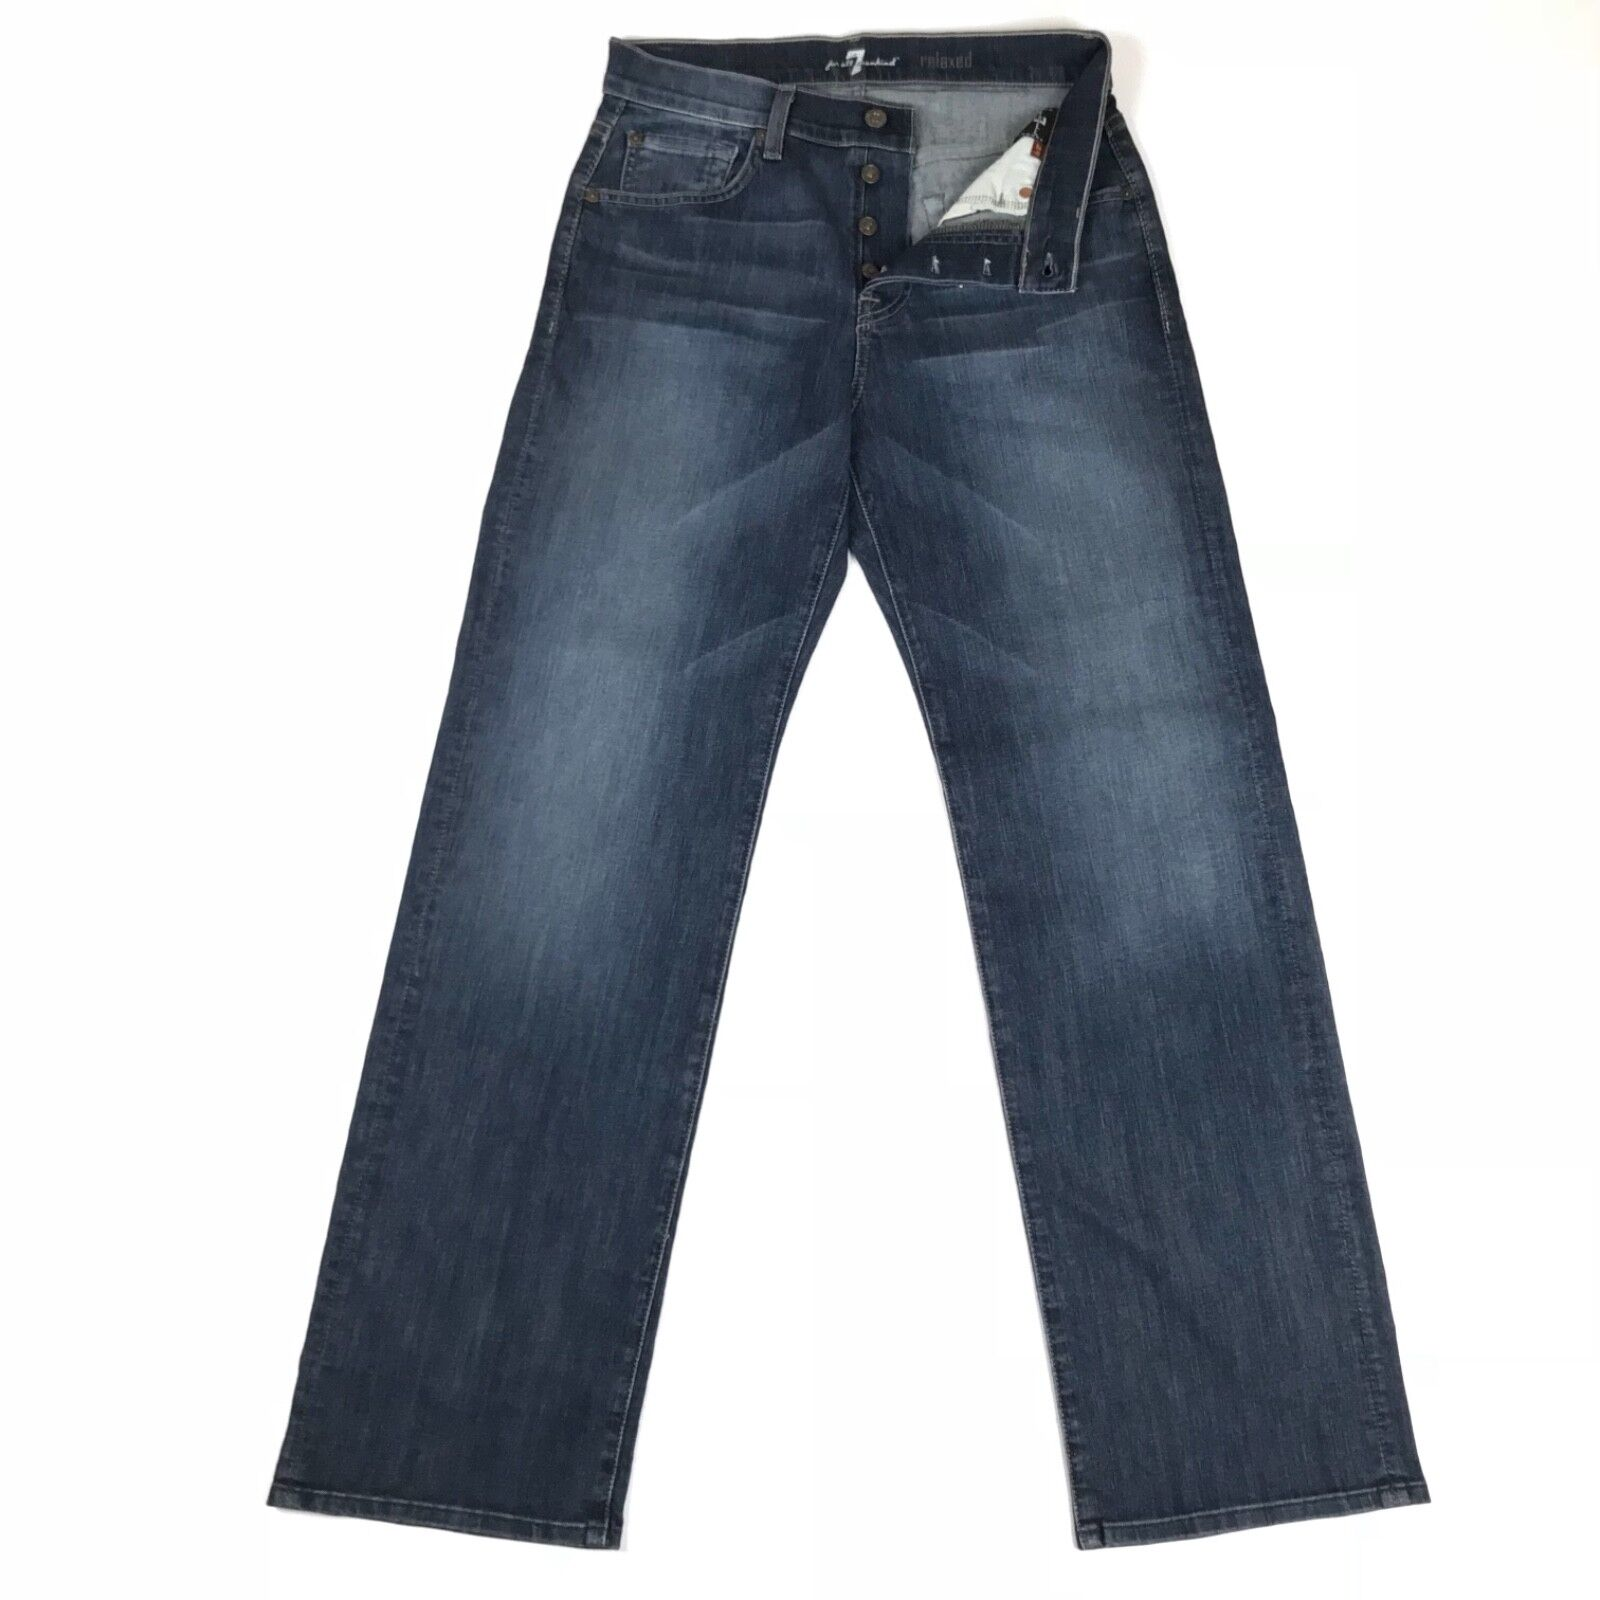 7 For All Mankind Mens Jeans Relaxed Button-Fly Size 29x32